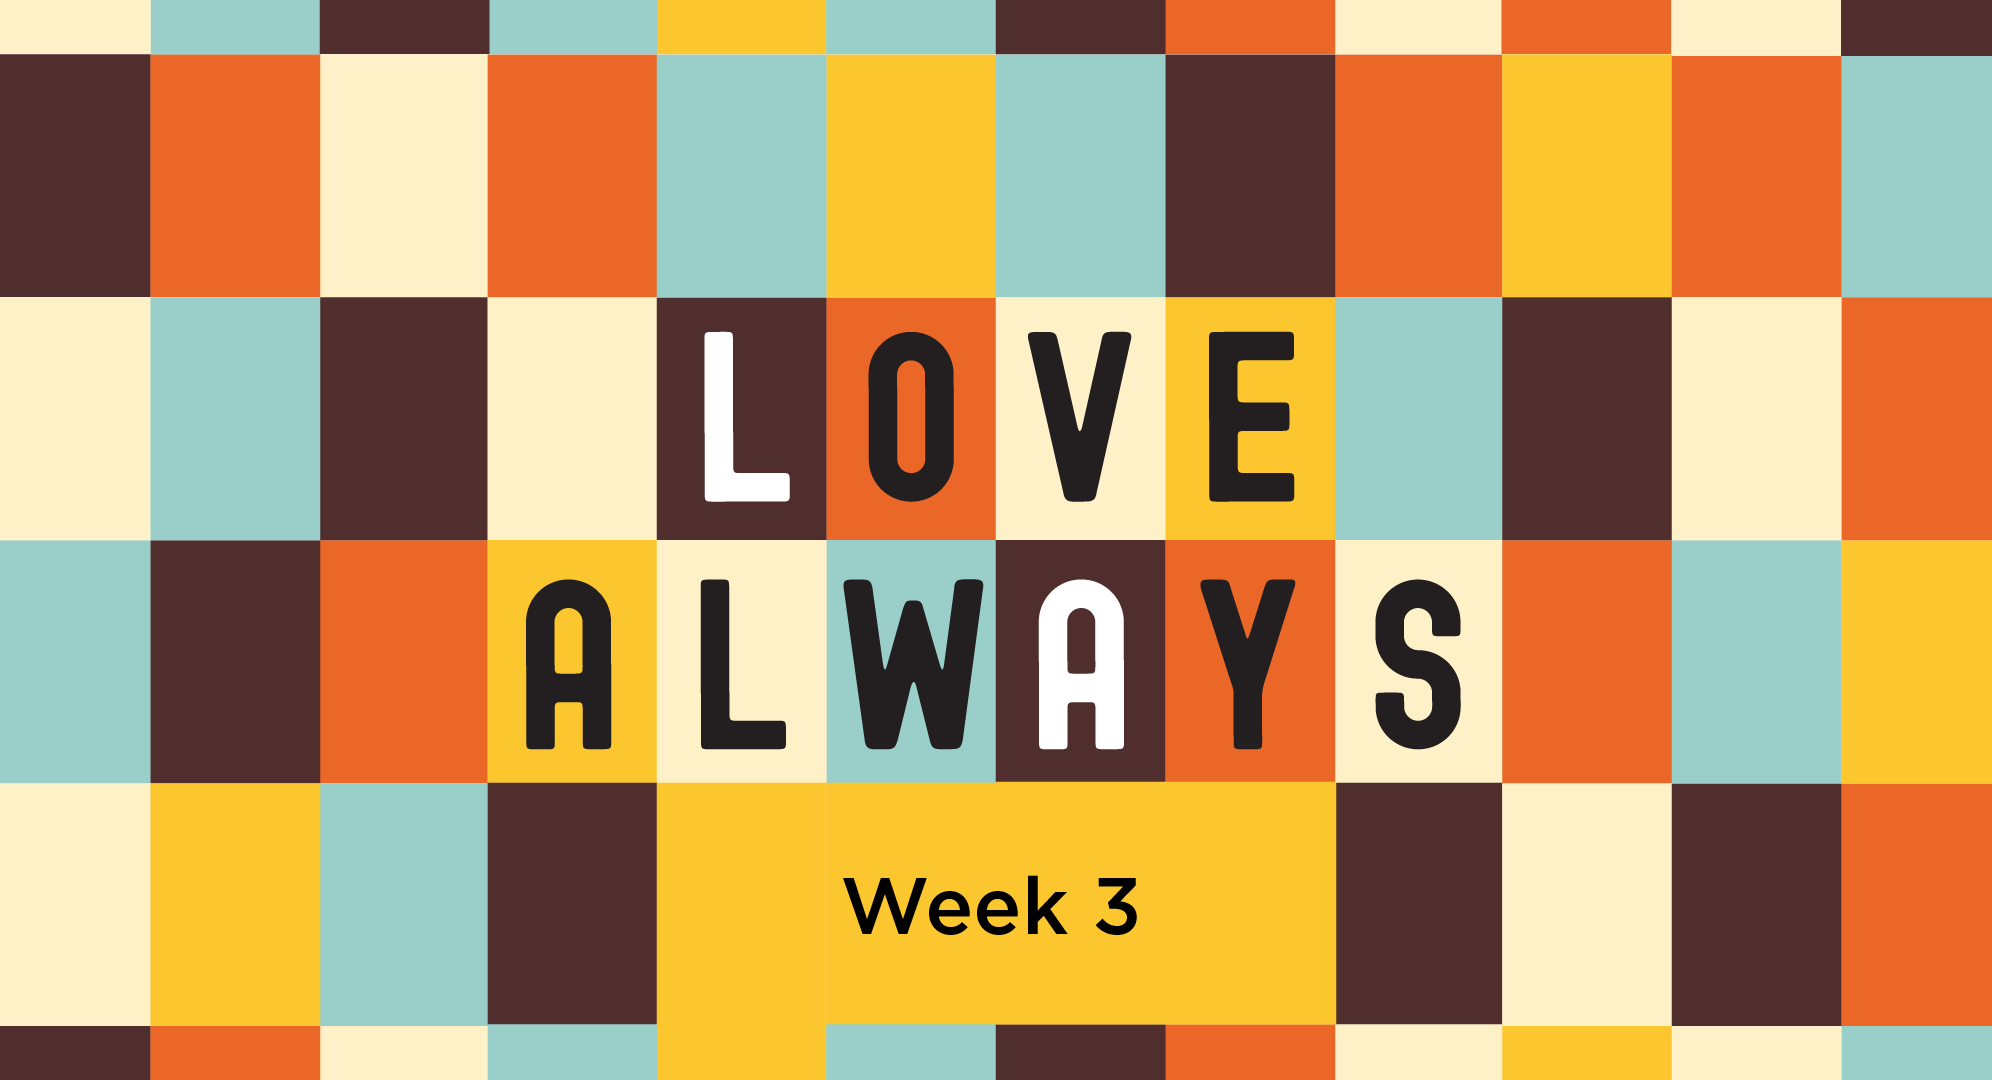 Love Always - Week Three